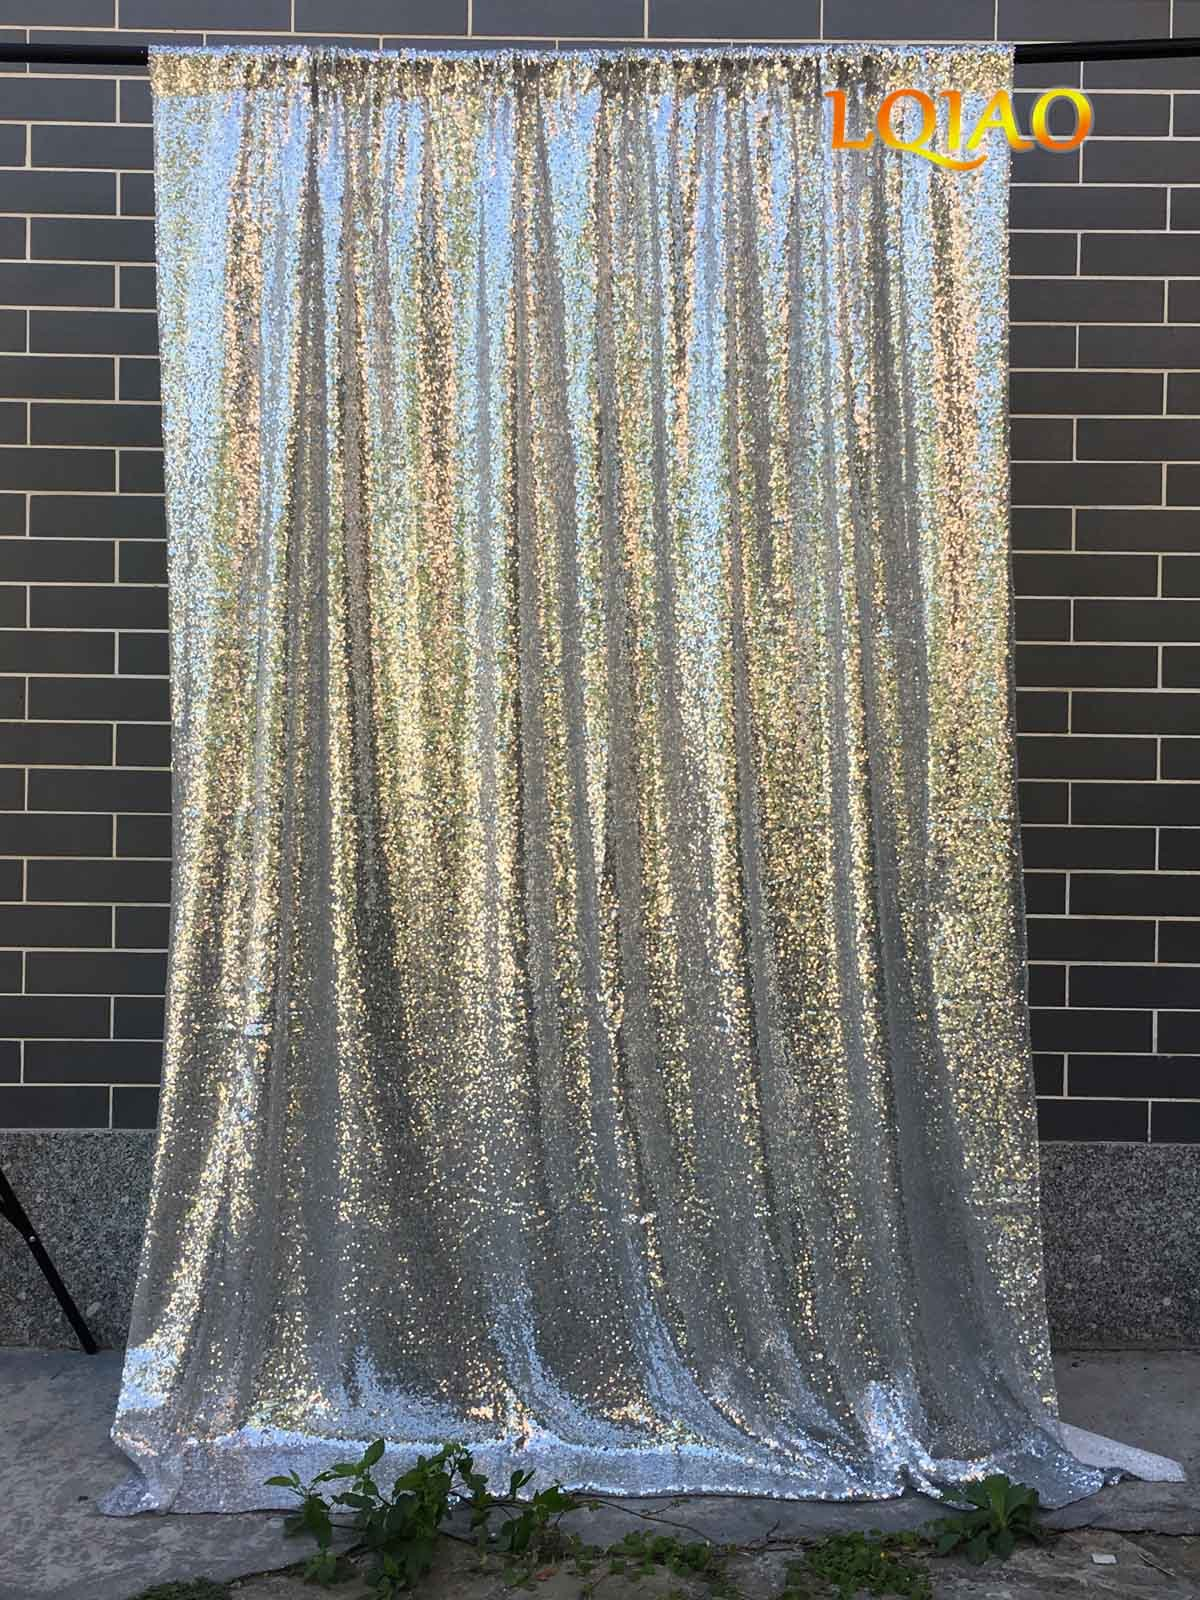 LQIAO Wedding Christmas Backdrop Glitter Silver 4FTx10FT Sequin Backdrop Window Curtain Photo Booth Photography Party Decoration